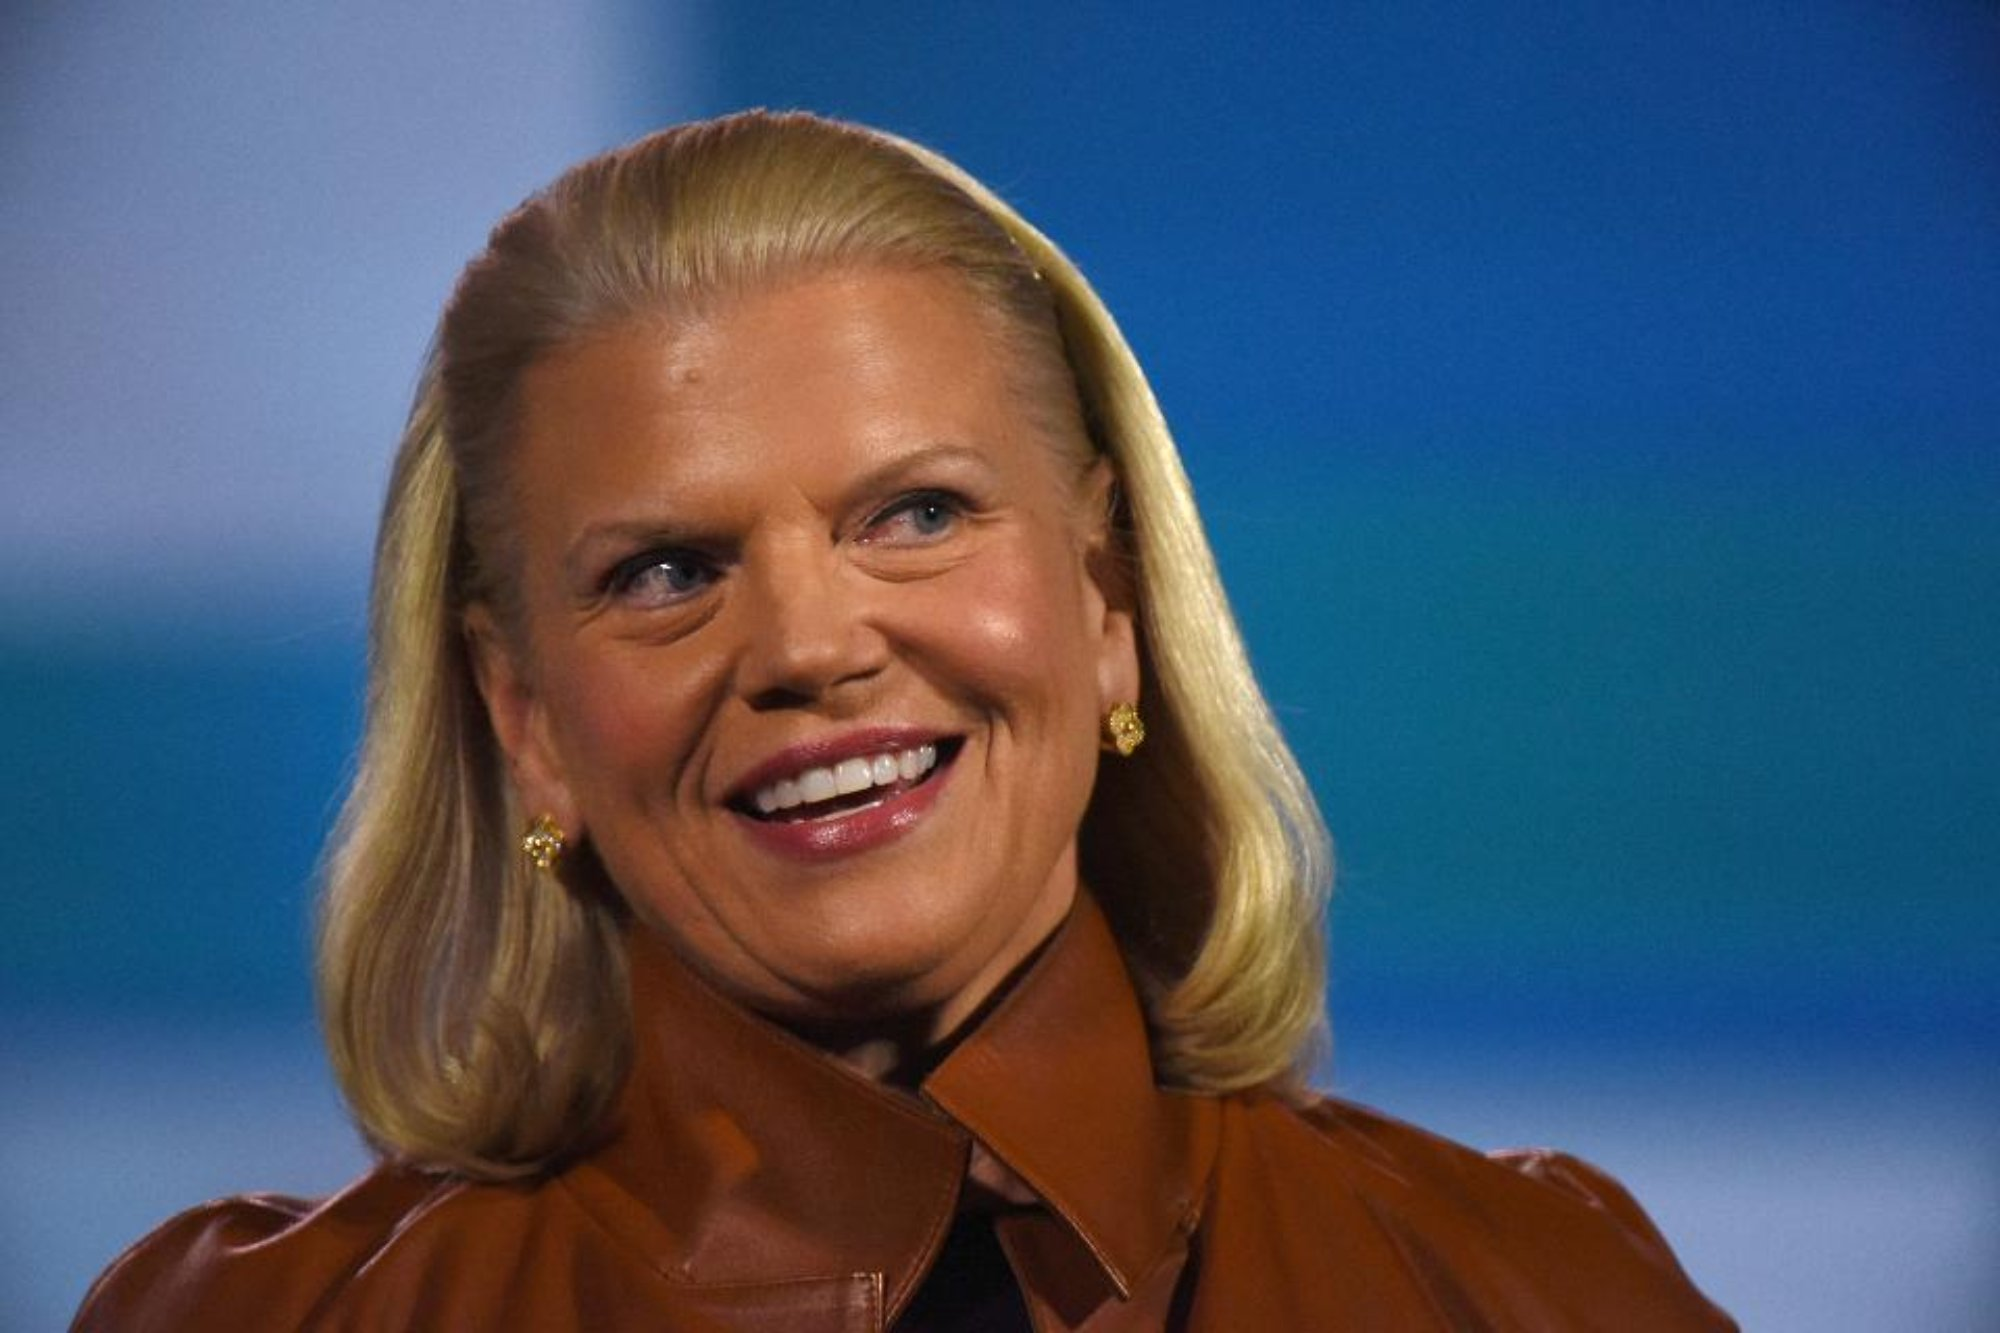 MD Anderson Benches IBM Watson In Setback For Artificial Intelligence In Medicine